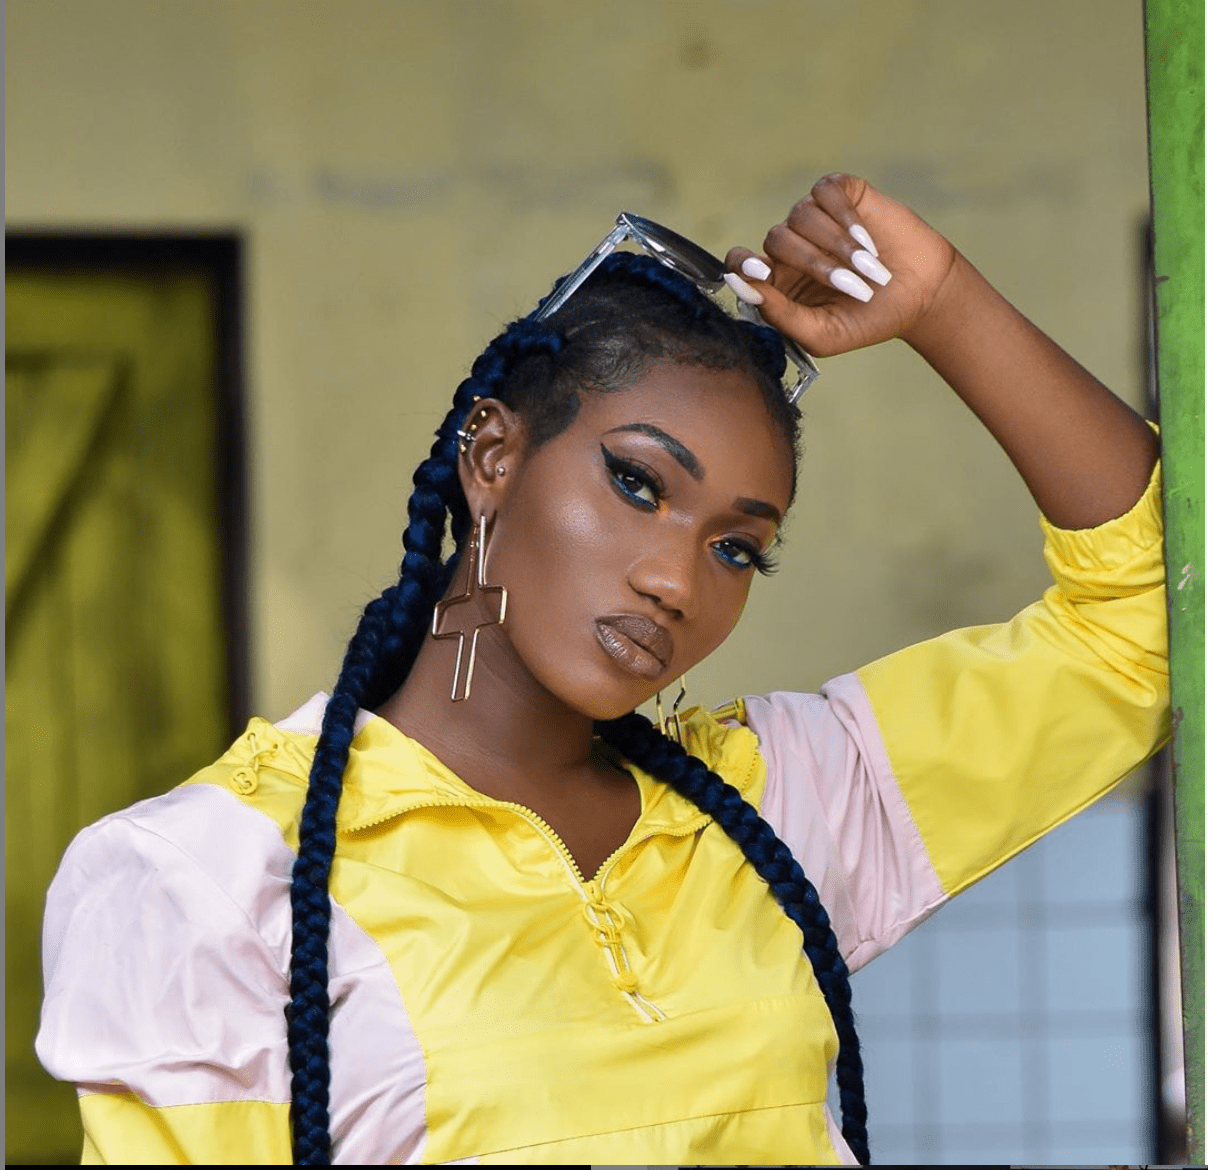 Wendy Shay vents on FDA for ban on advertisement of alcoholic beverages: FDA responds